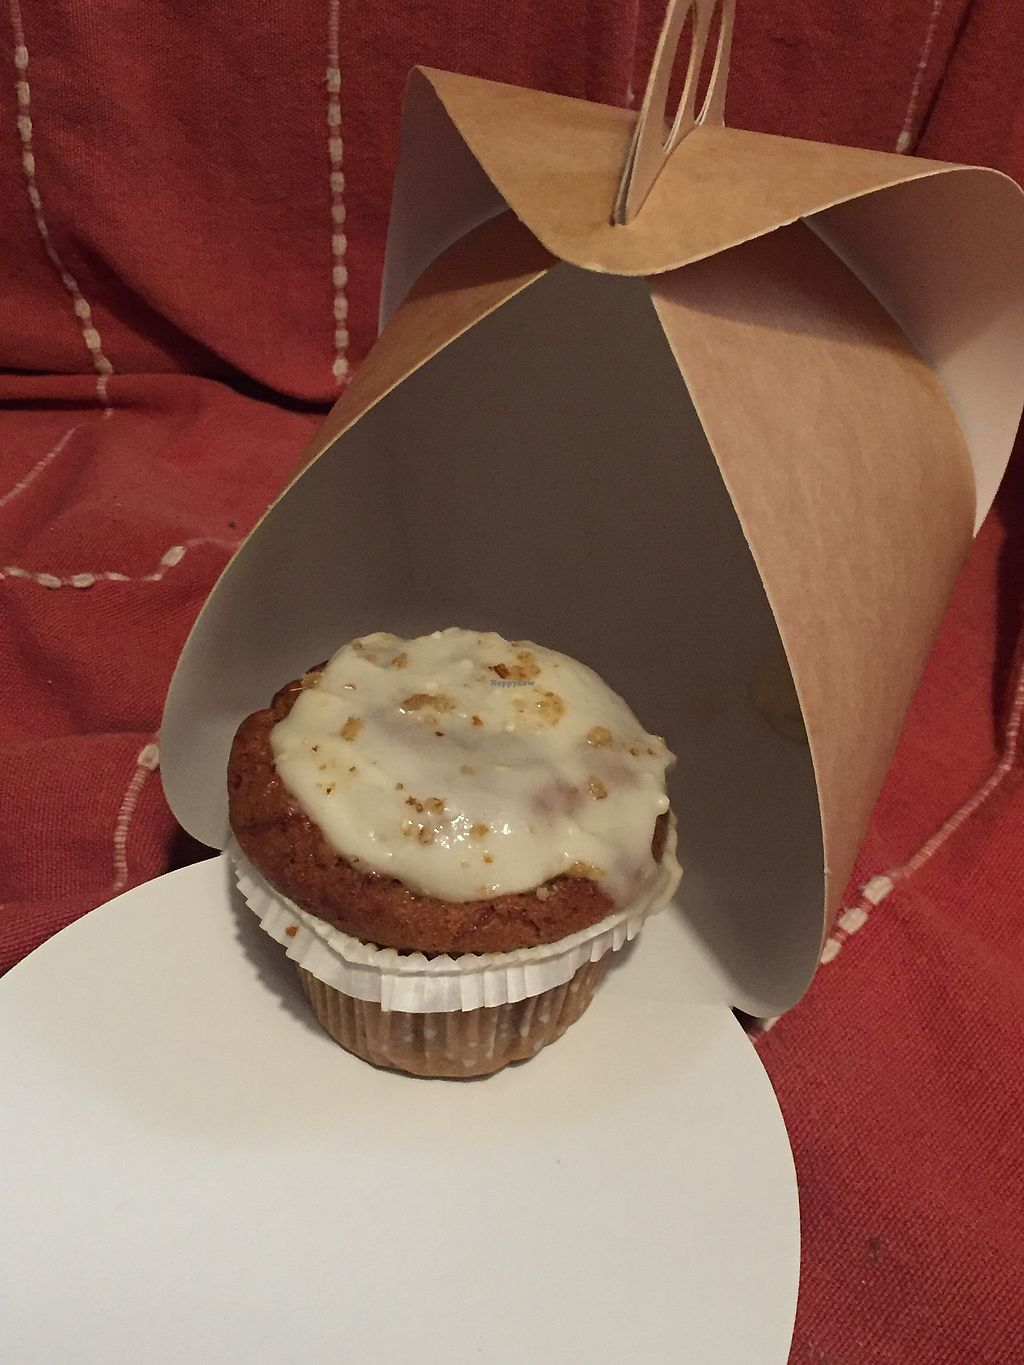 """Photo of La Besneta  by <a href=""""/members/profile/Jameskille"""">Jameskille</a> <br/>carrot cake muffin  <br/> August 7, 2017  - <a href='/contact/abuse/image/62257/290074'>Report</a>"""